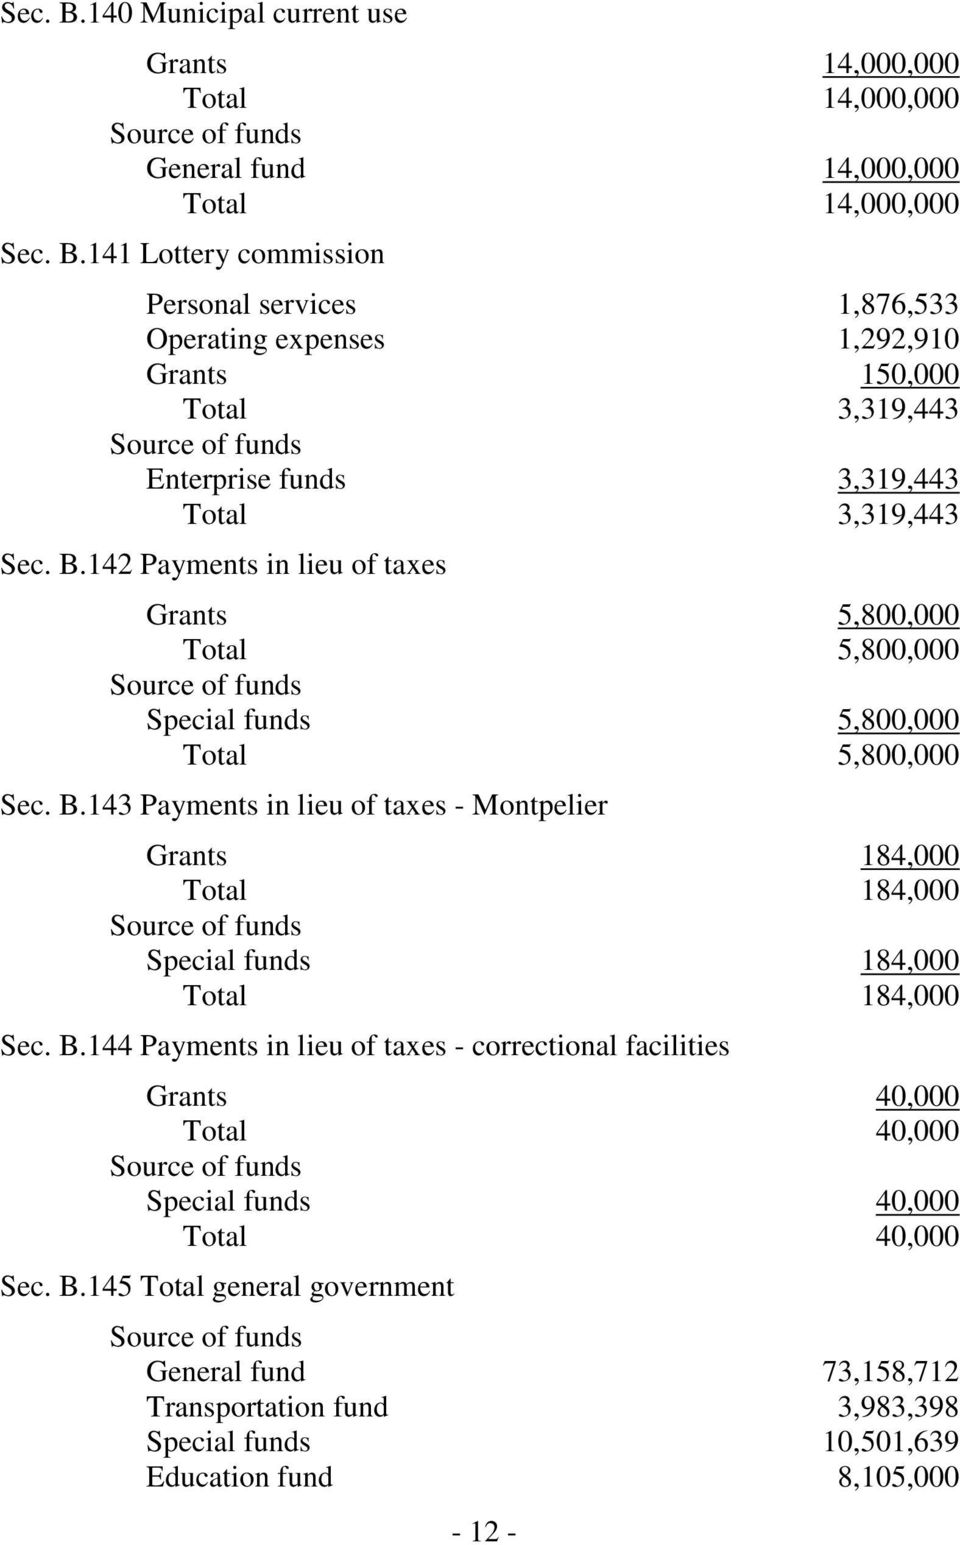 143 Payments in lieu of taxes - Montpelier Grants 184,000 Total 184,000 Special funds 184,000 Total 184,000 Sec. B.